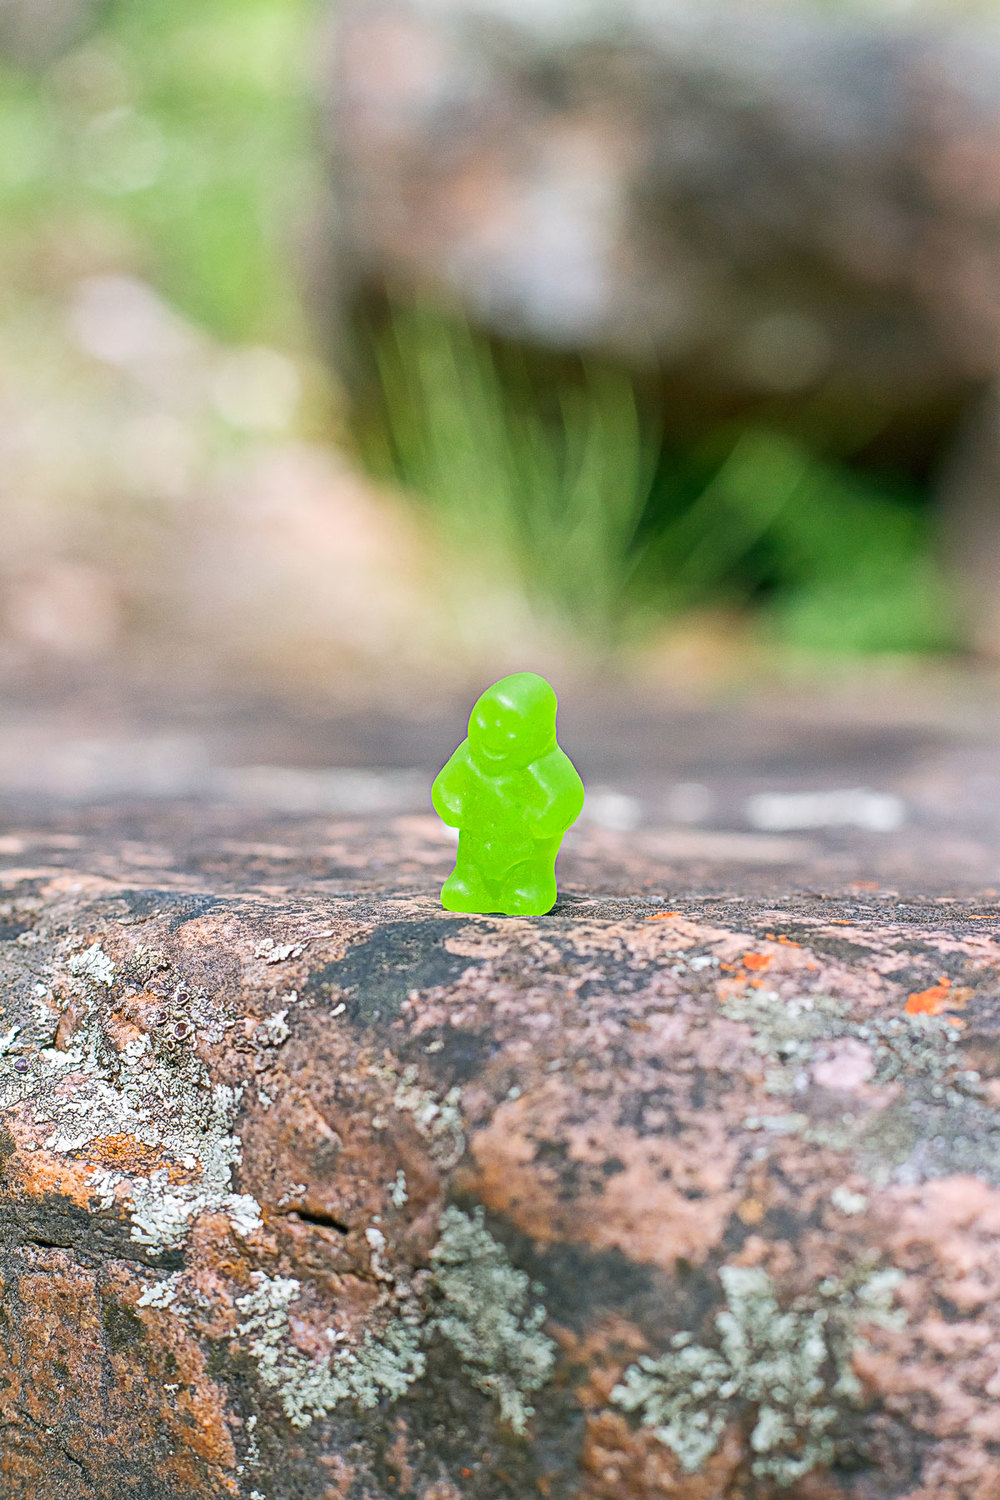 13 Green Jelly Baby on rock.jpg